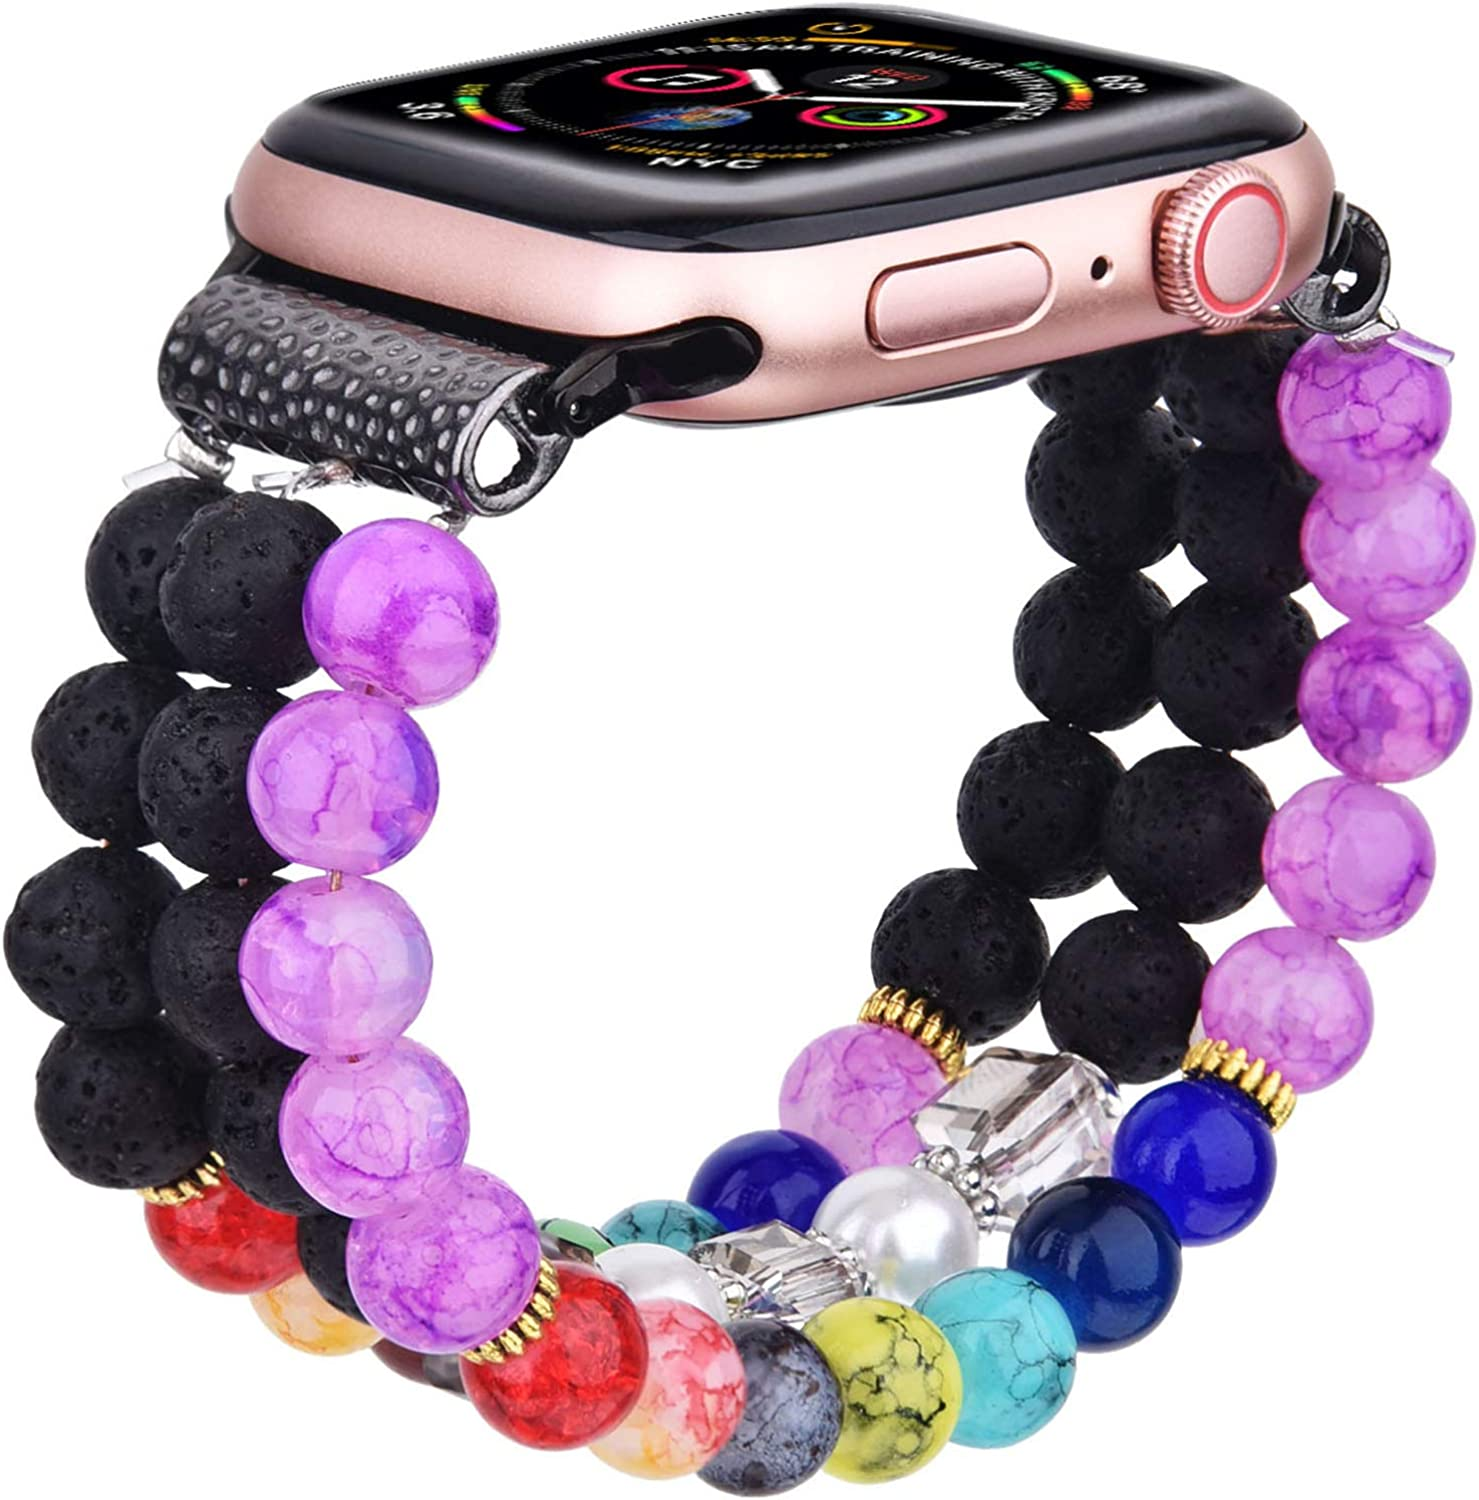 CAGOS Bracelet Beadeds Compatible with Apple Watch Band 42mm/44mm Series 6/5/4/3/2/1 Cute Handmade Fashion Elastic Stretch Beaded Strap Replacement with Stainless Steel Adapter for iWatch Black